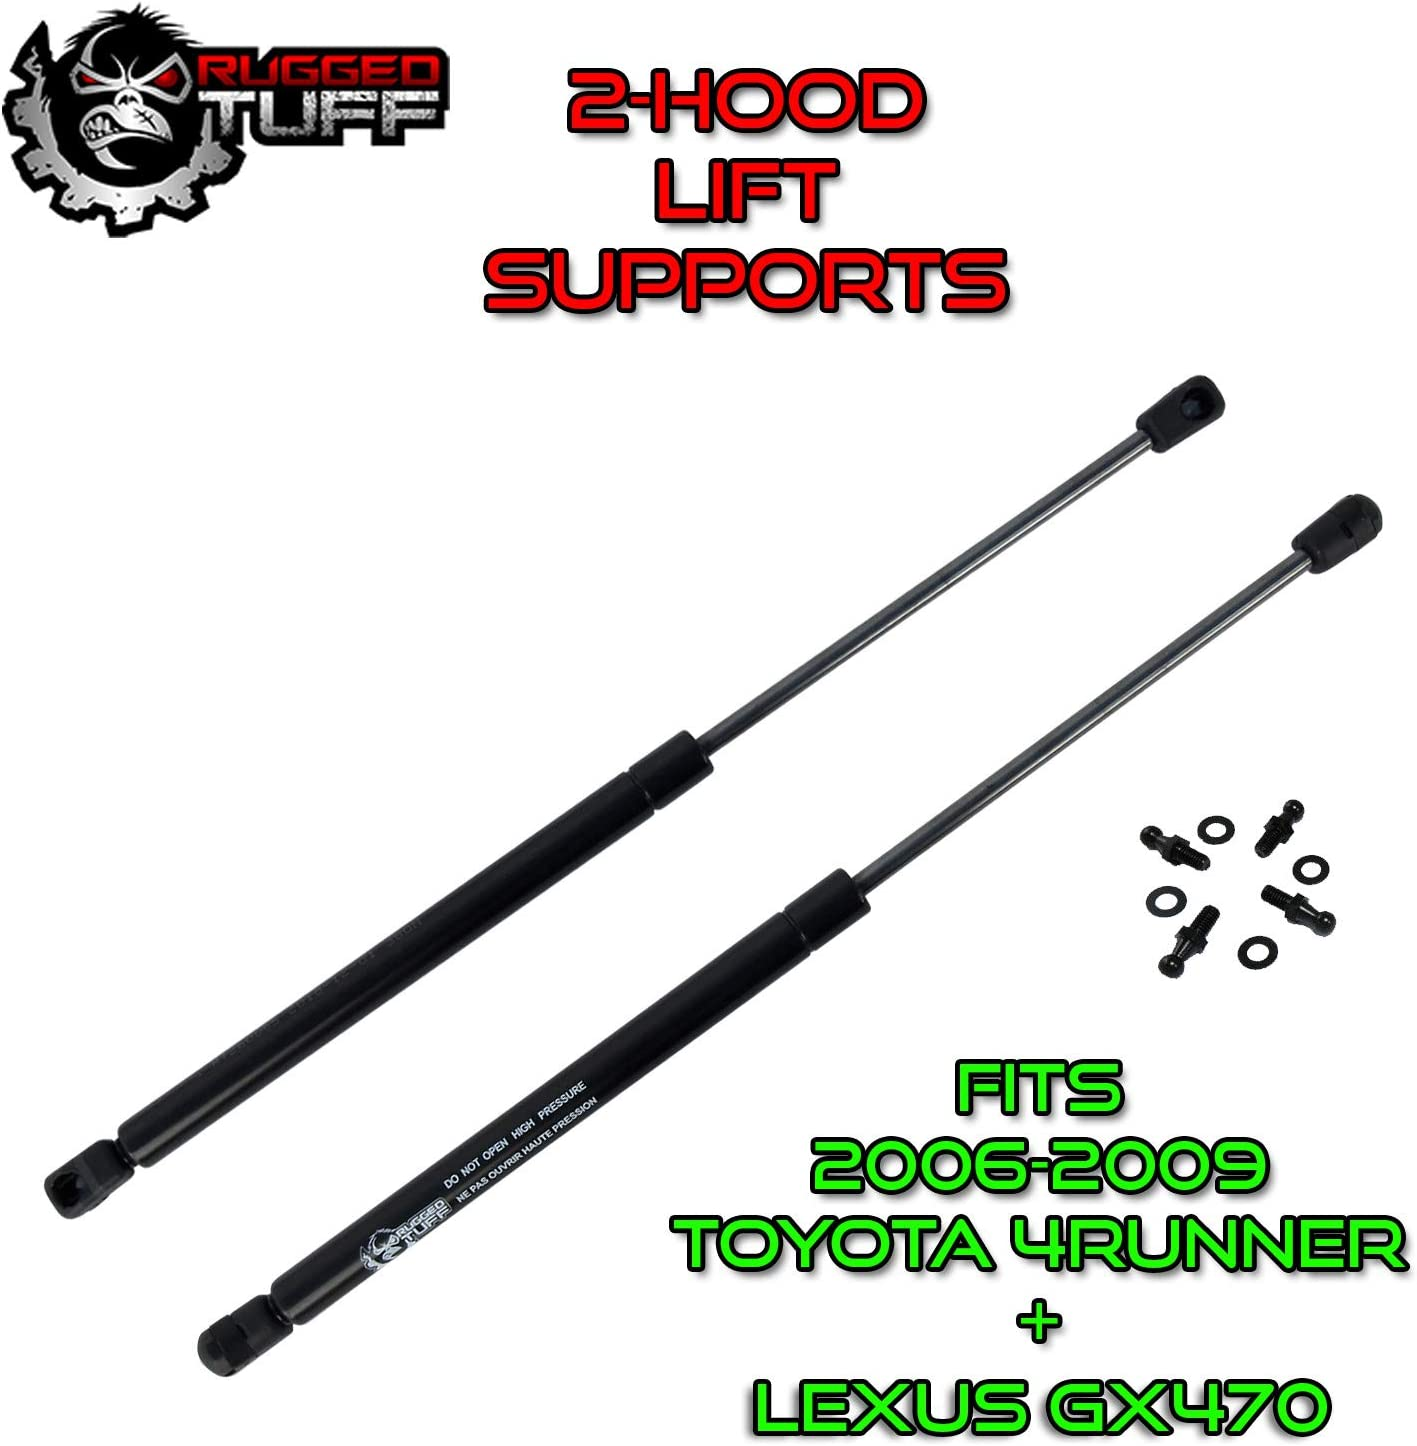 LEXUS GX470 Assist Struts Shocks Springs Props Arms Dampers Bonnet Lid RT260065 SG329065 Qty 2 Rugged TUFF Front Hood Shocks Lift Supports Compatible With 2006 2007 2008 2009 Toyota 4Runner